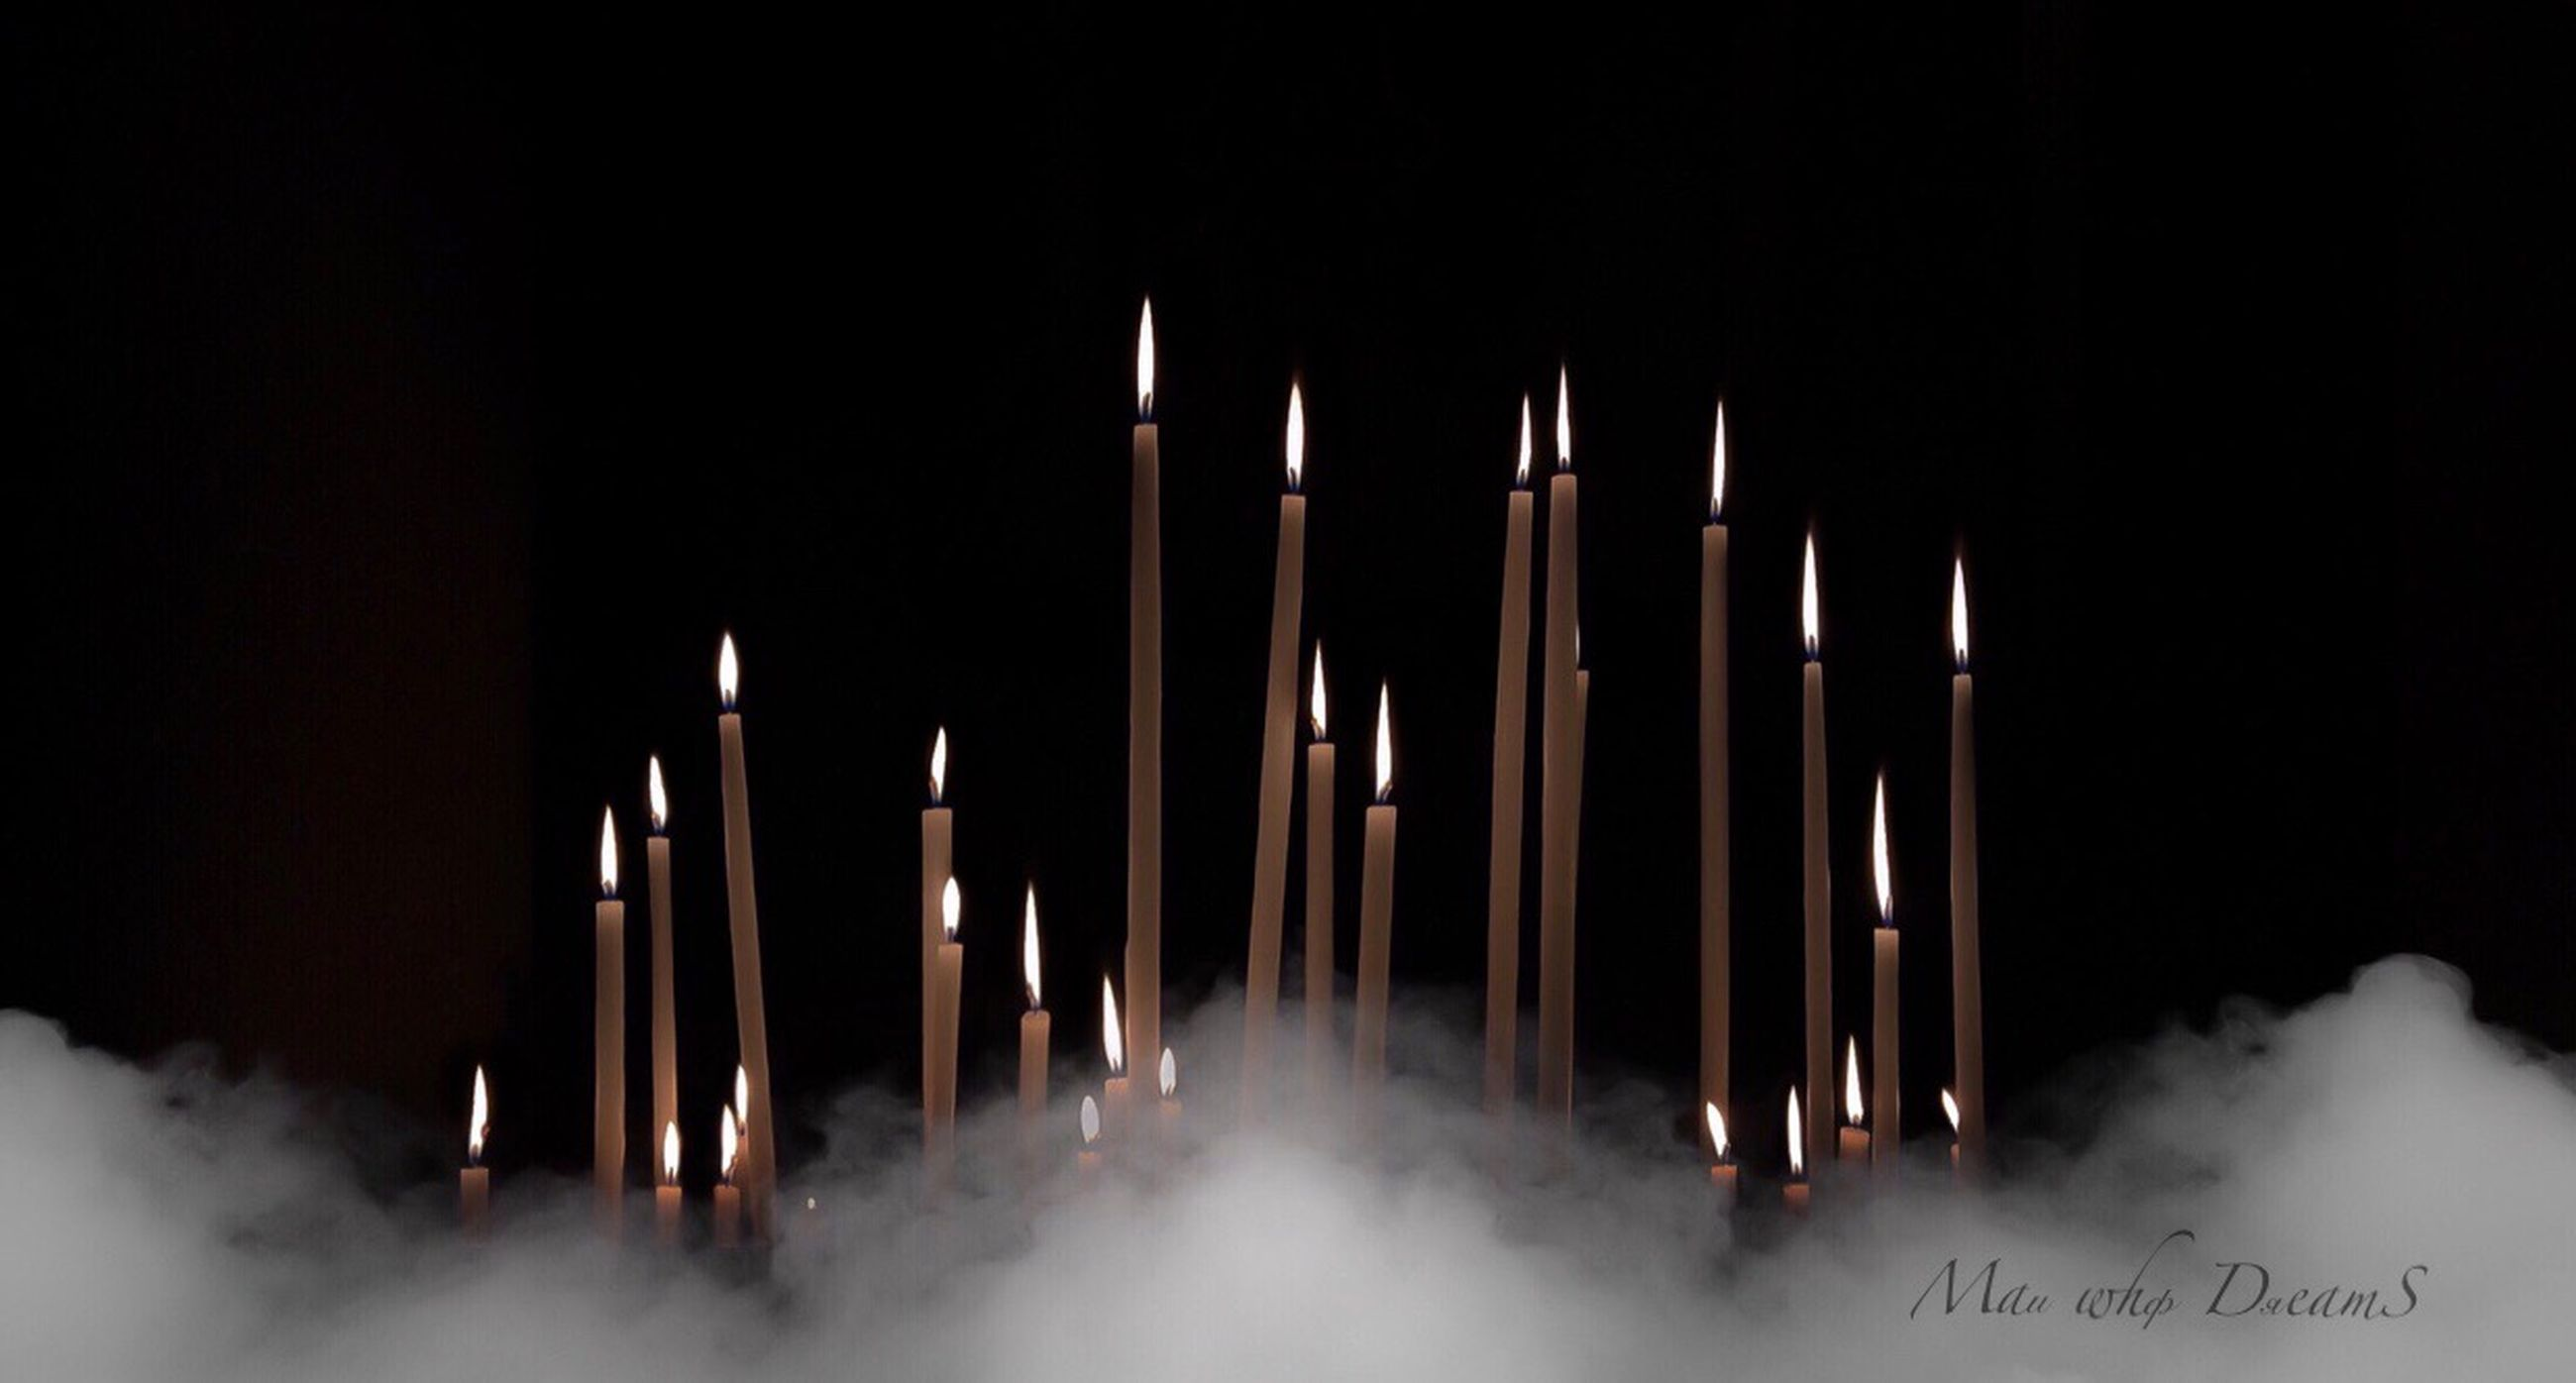 burning, flame, candle, religion, belief, fire, place of worship, spirituality, no people, indoors, large group of objects, fire - natural phenomenon, heat - temperature, studio shot, motion, nature, architecture, incense, building, black background, matchstick